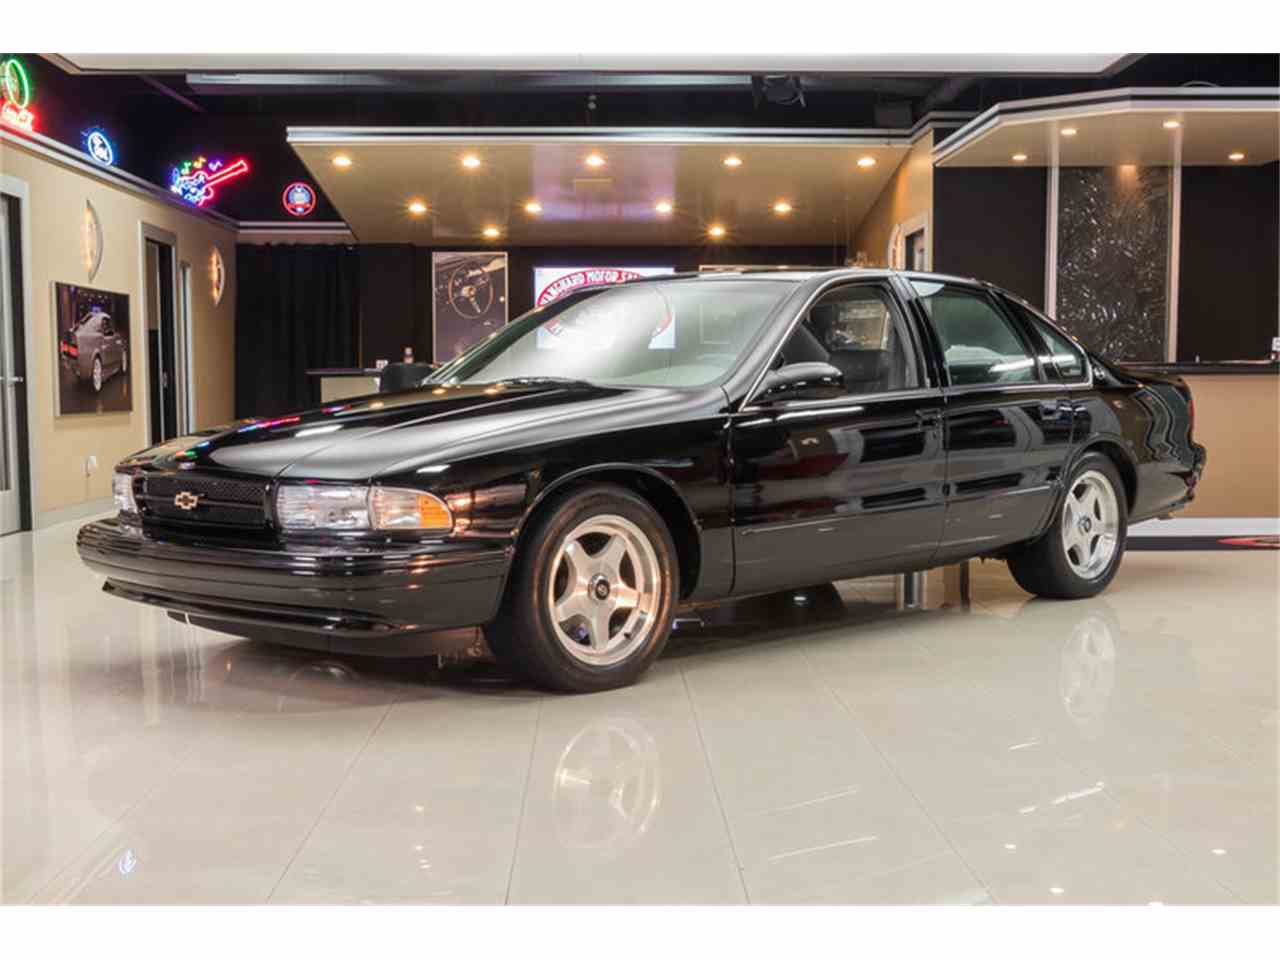 1996 chevrolet impala ss for sale cc. Black Bedroom Furniture Sets. Home Design Ideas